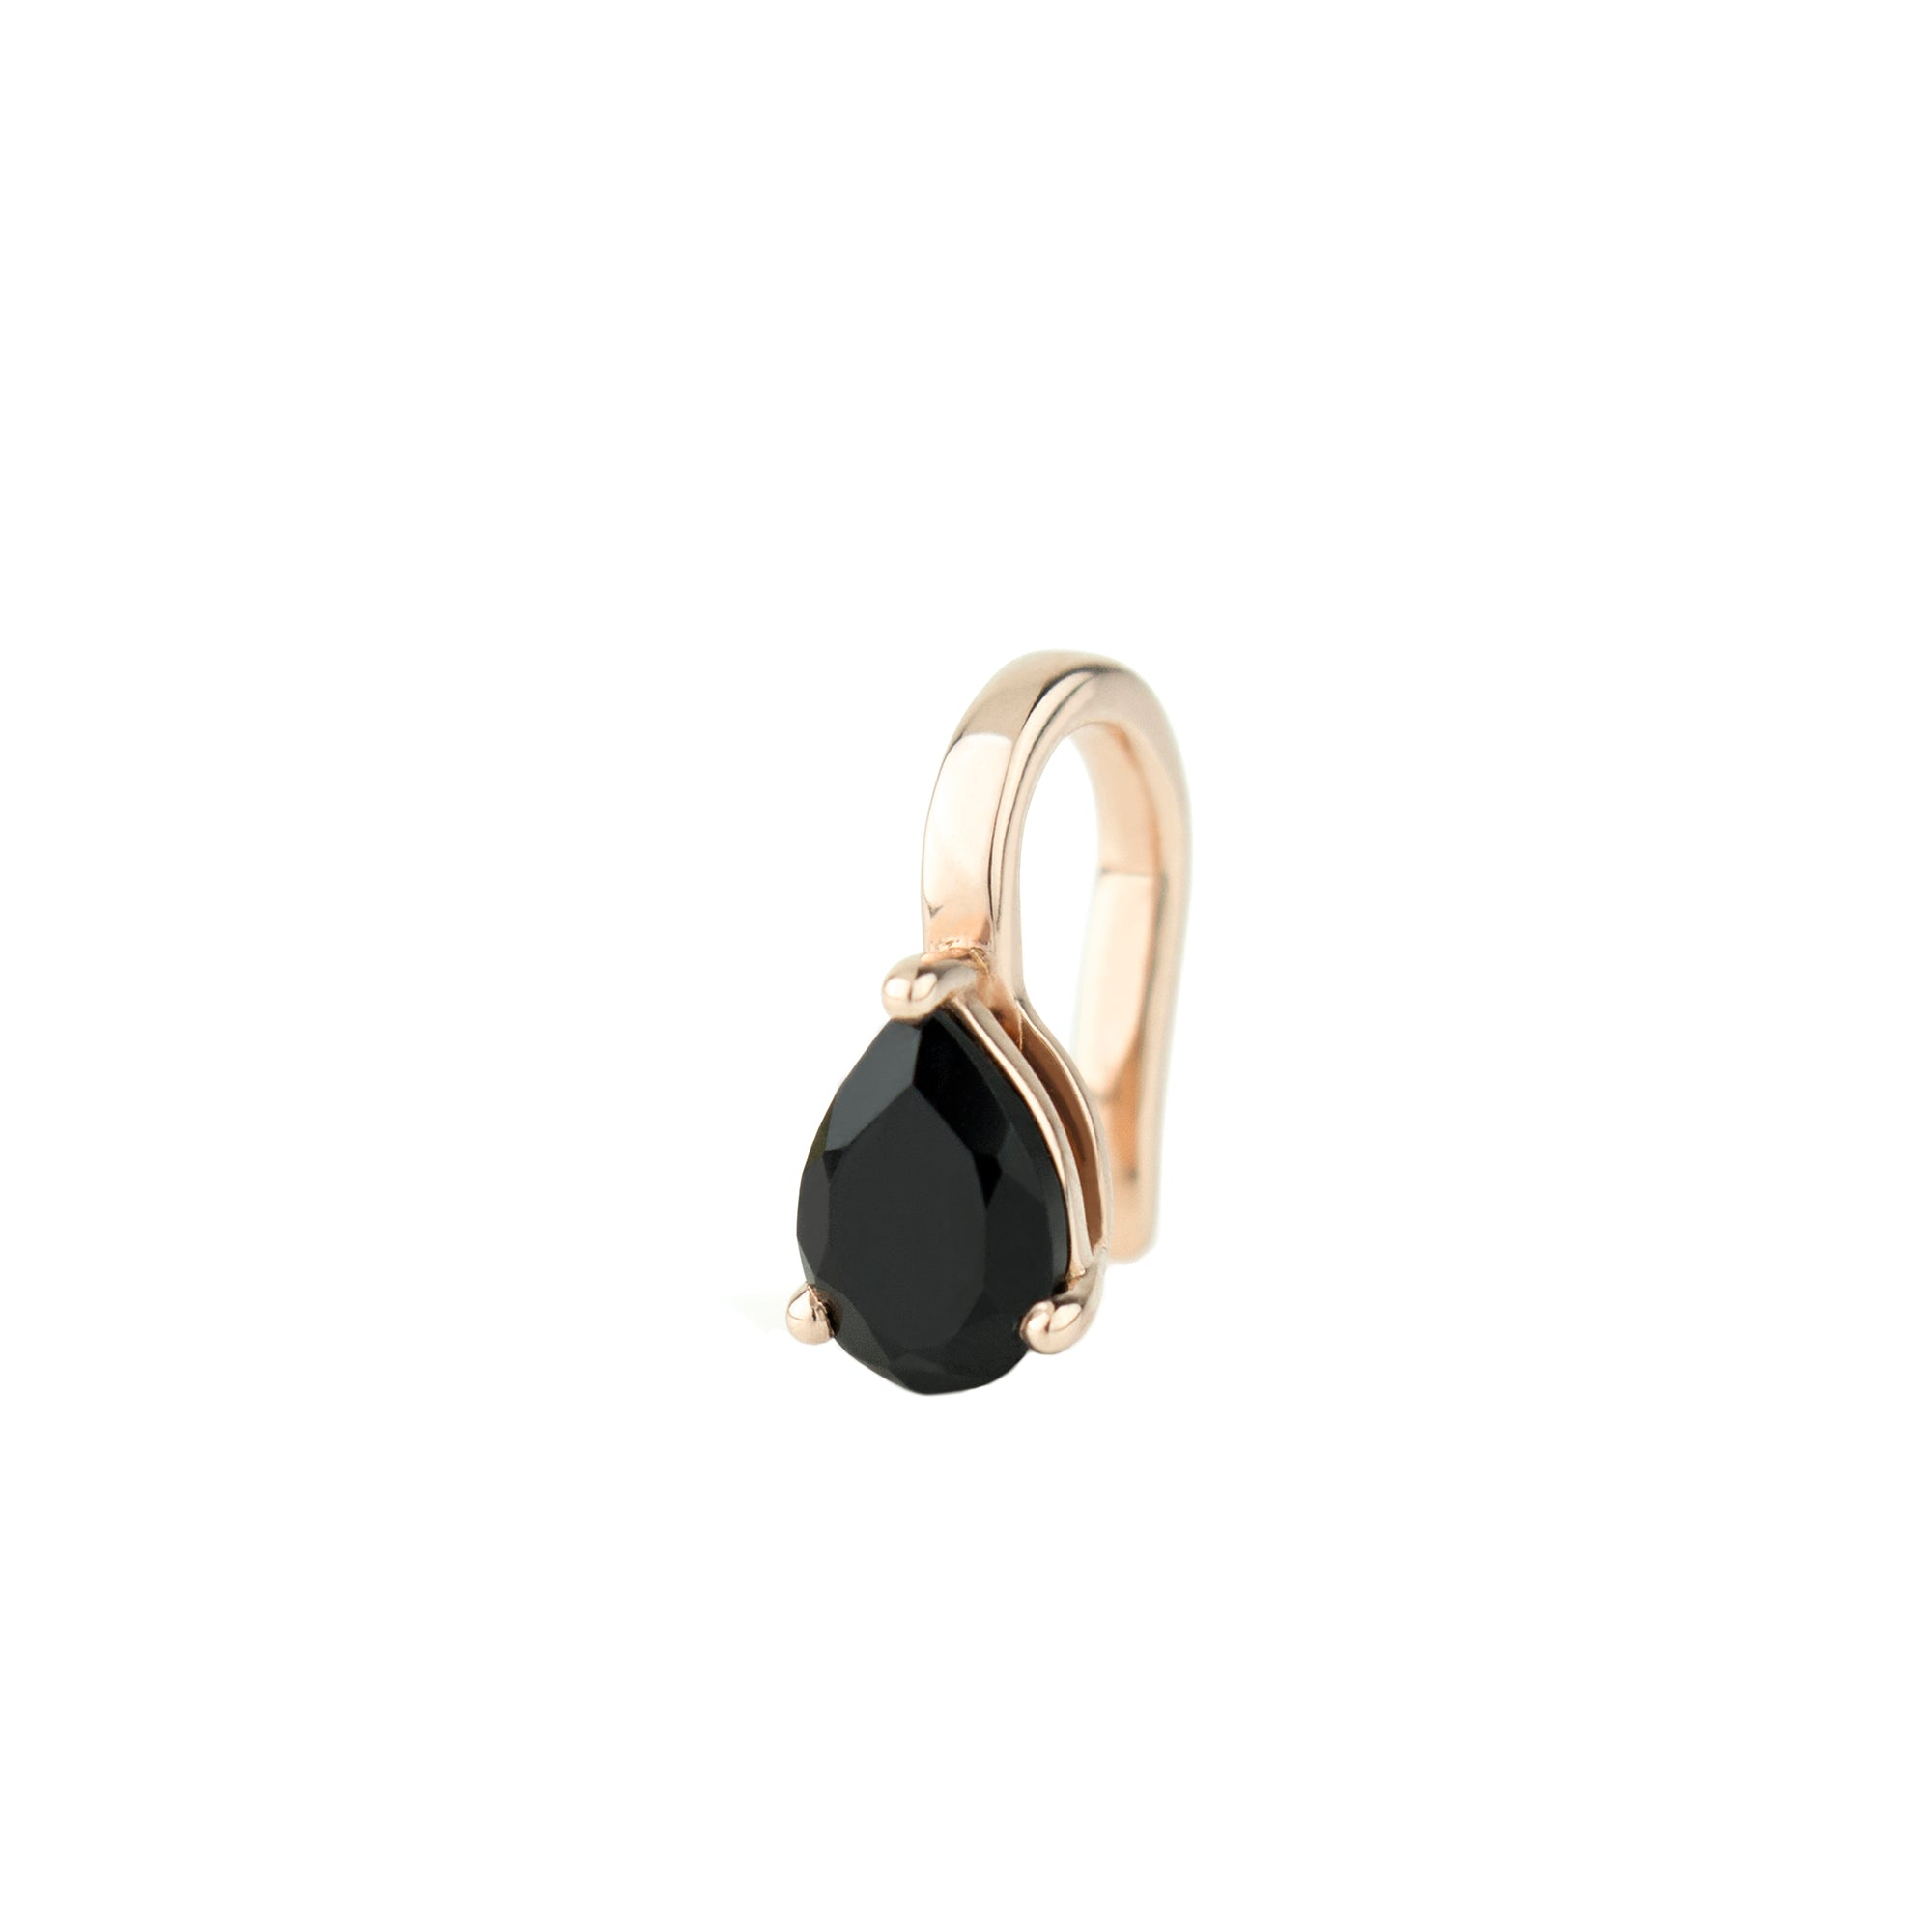 Black Spinel Pirum Clip by Altruist for Broken English Jewelry